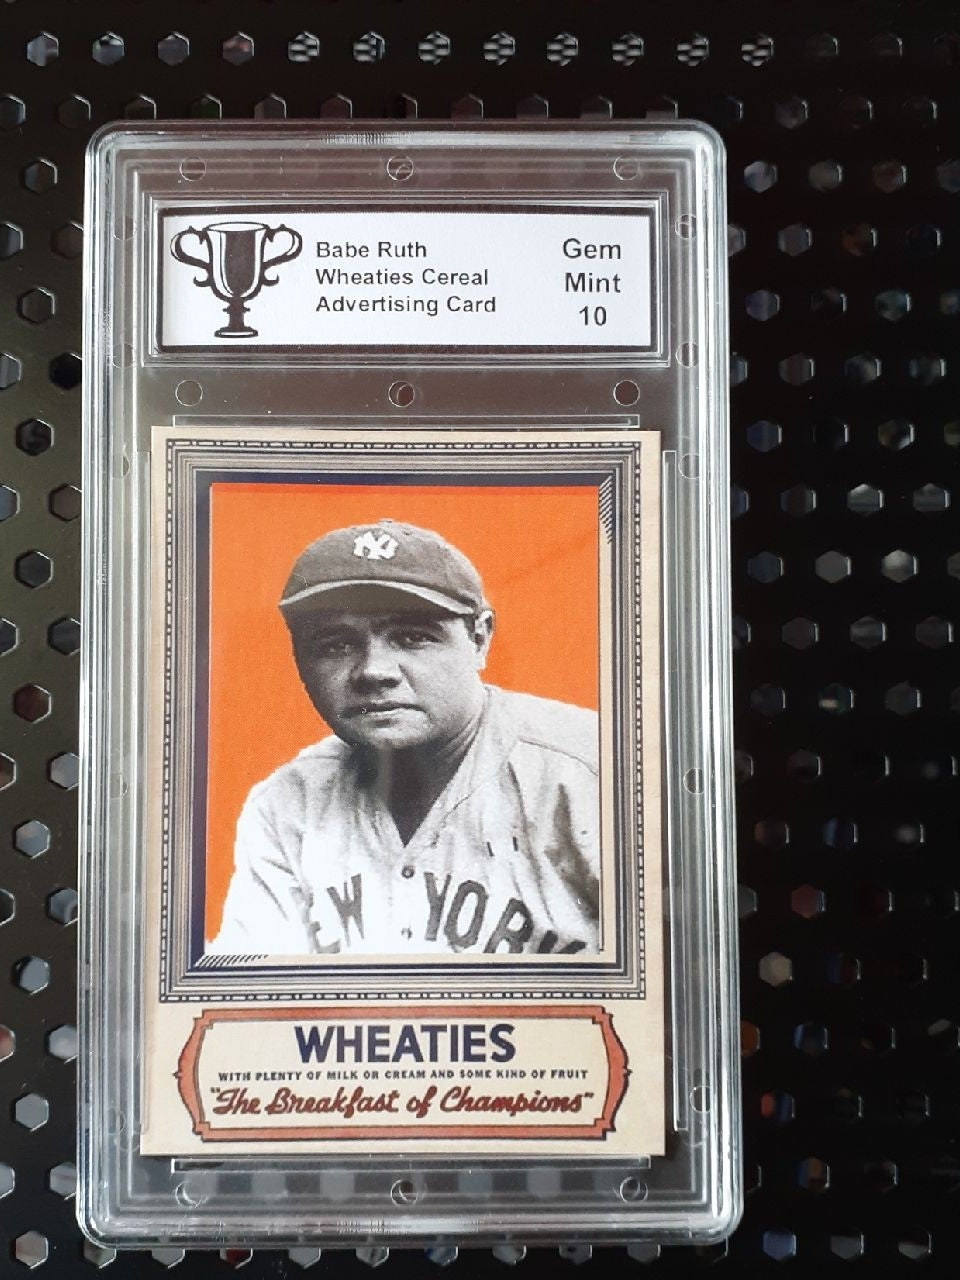 Babe Ruth Wheaties Cereal Card Mint 10